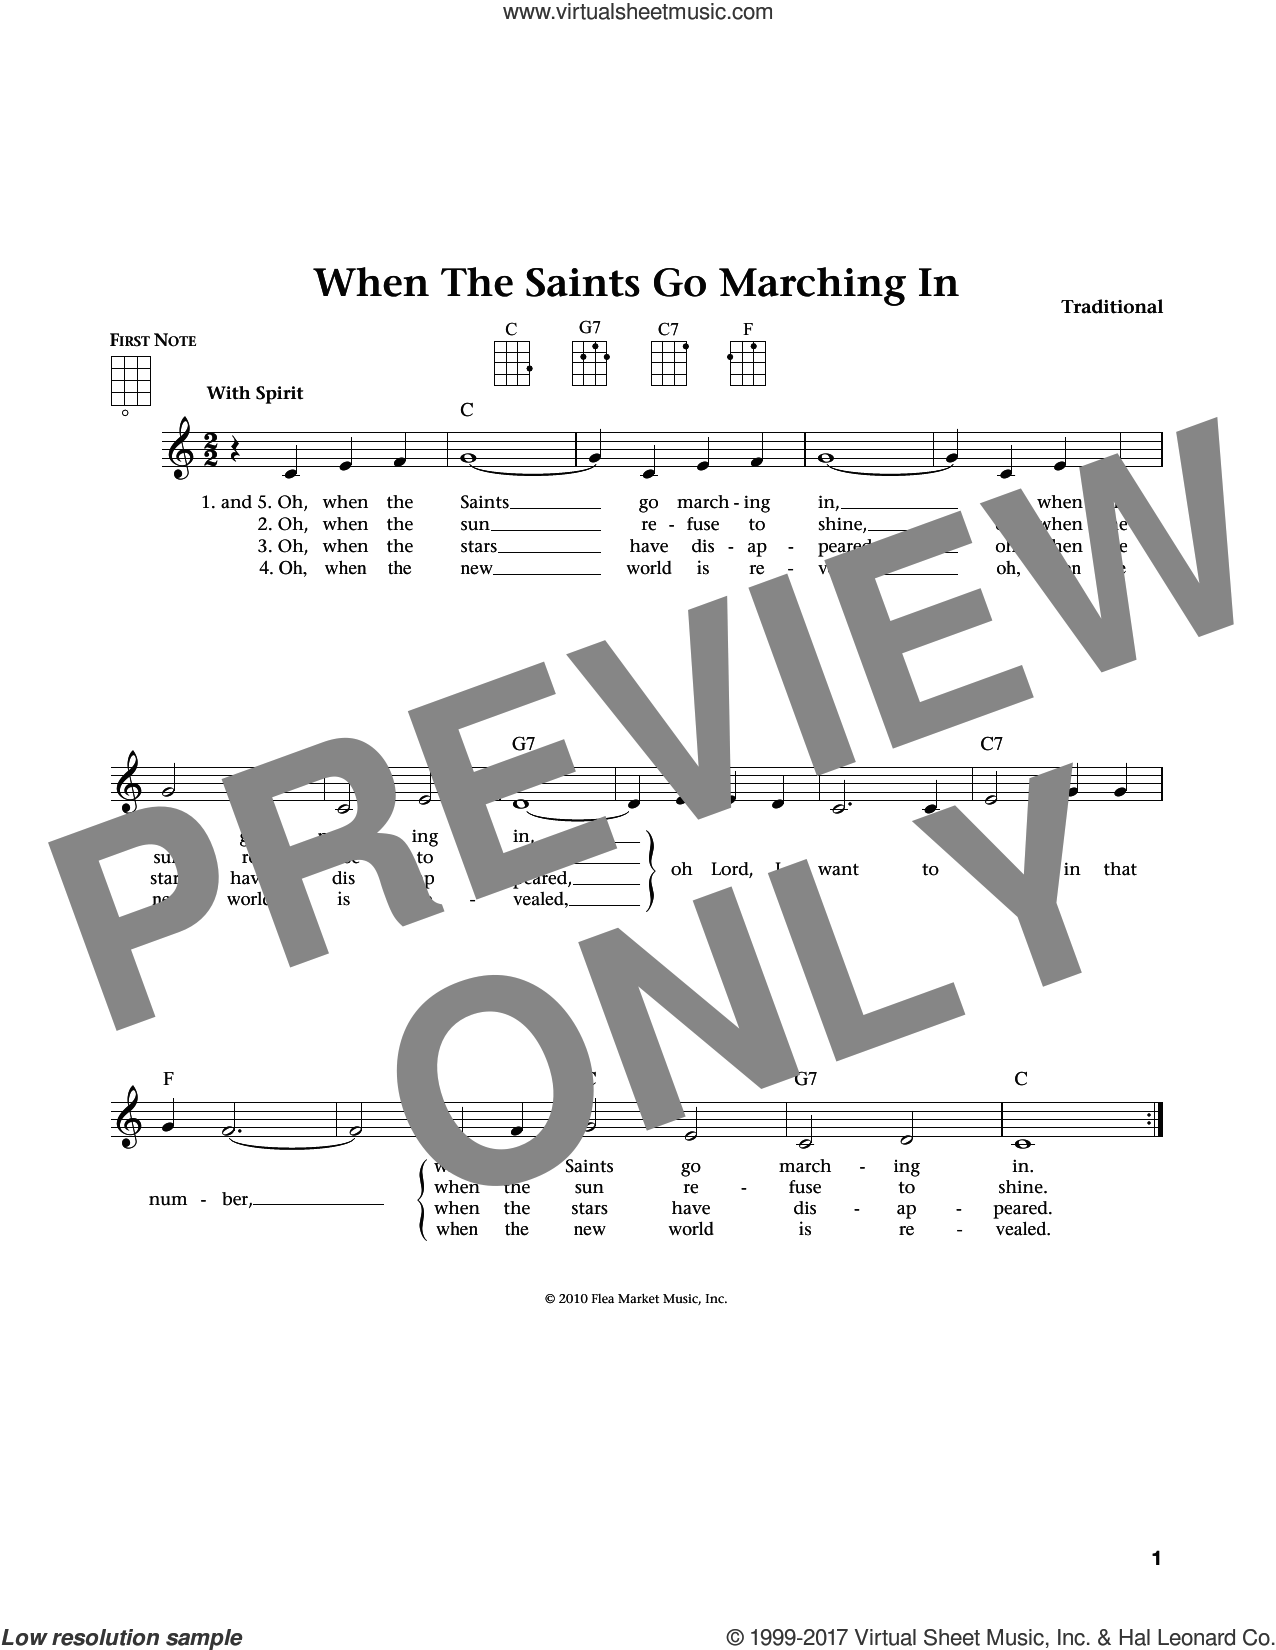 When The Saints Go Marching In sheet music for ukulele , Jim Beloff and Liz Beloff, intermediate skill level